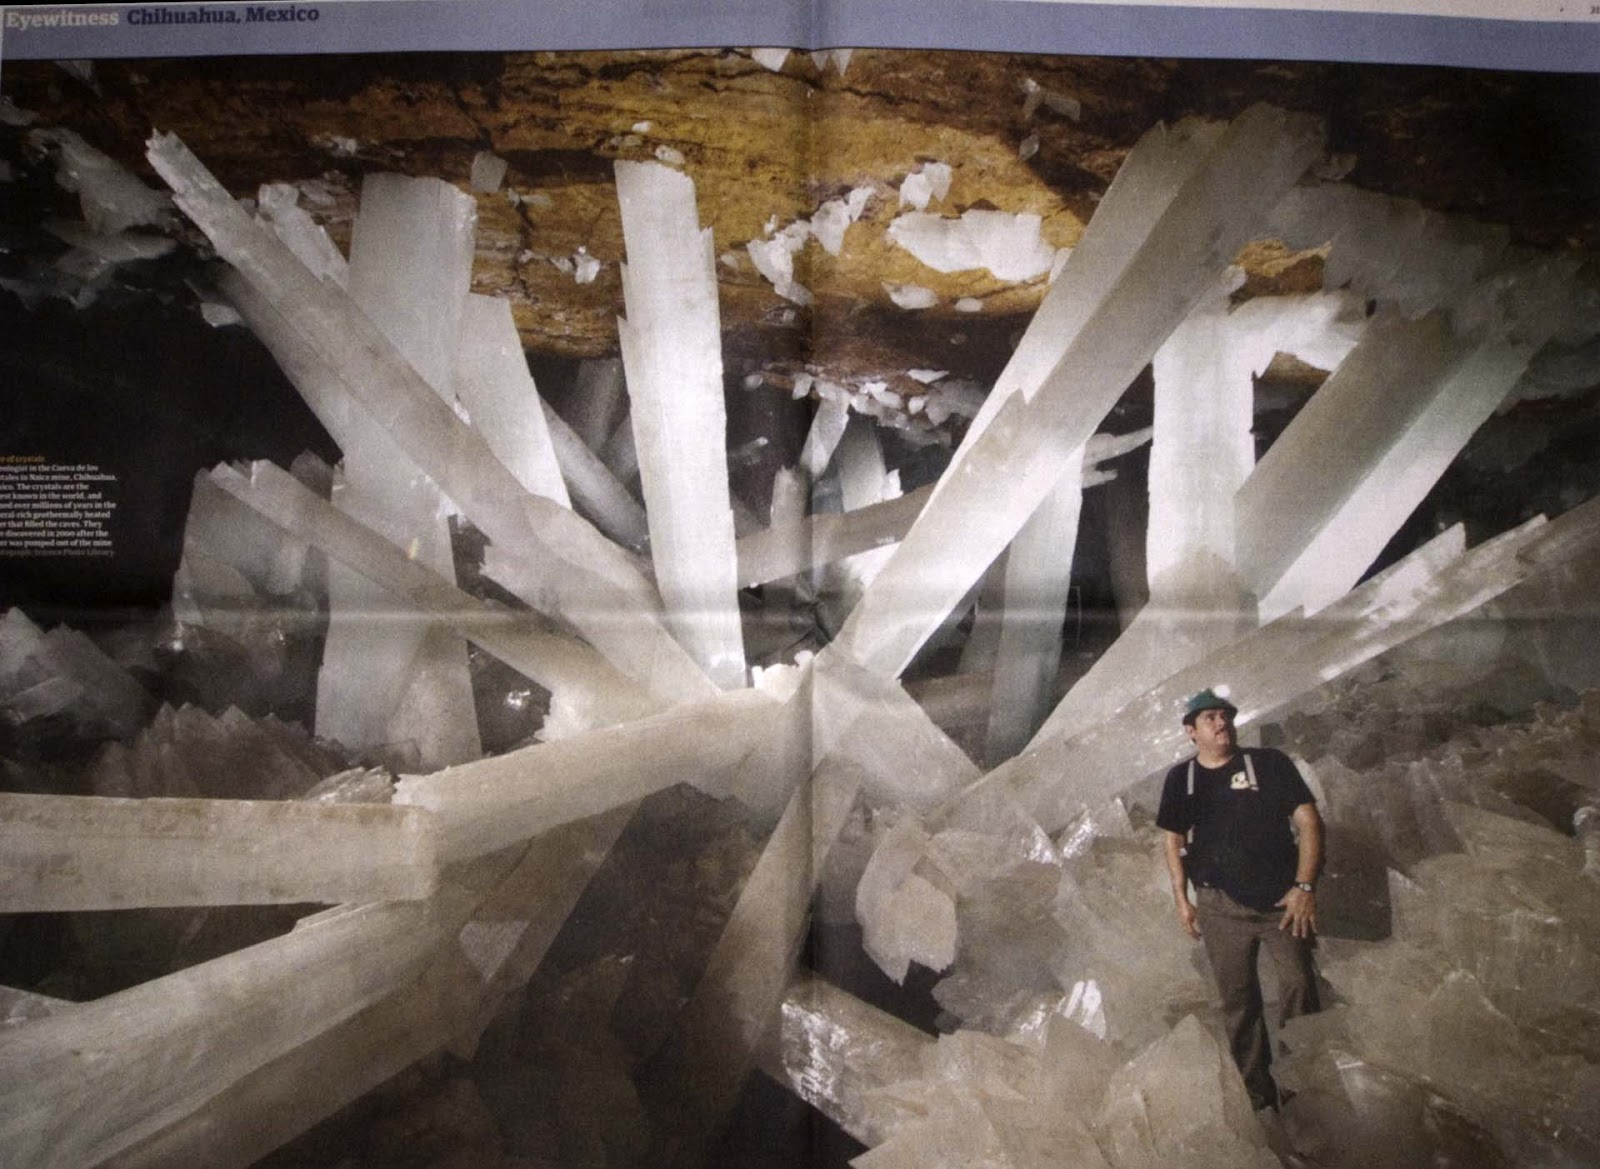 naica mine the cave of giant crystals mexico incredipedia